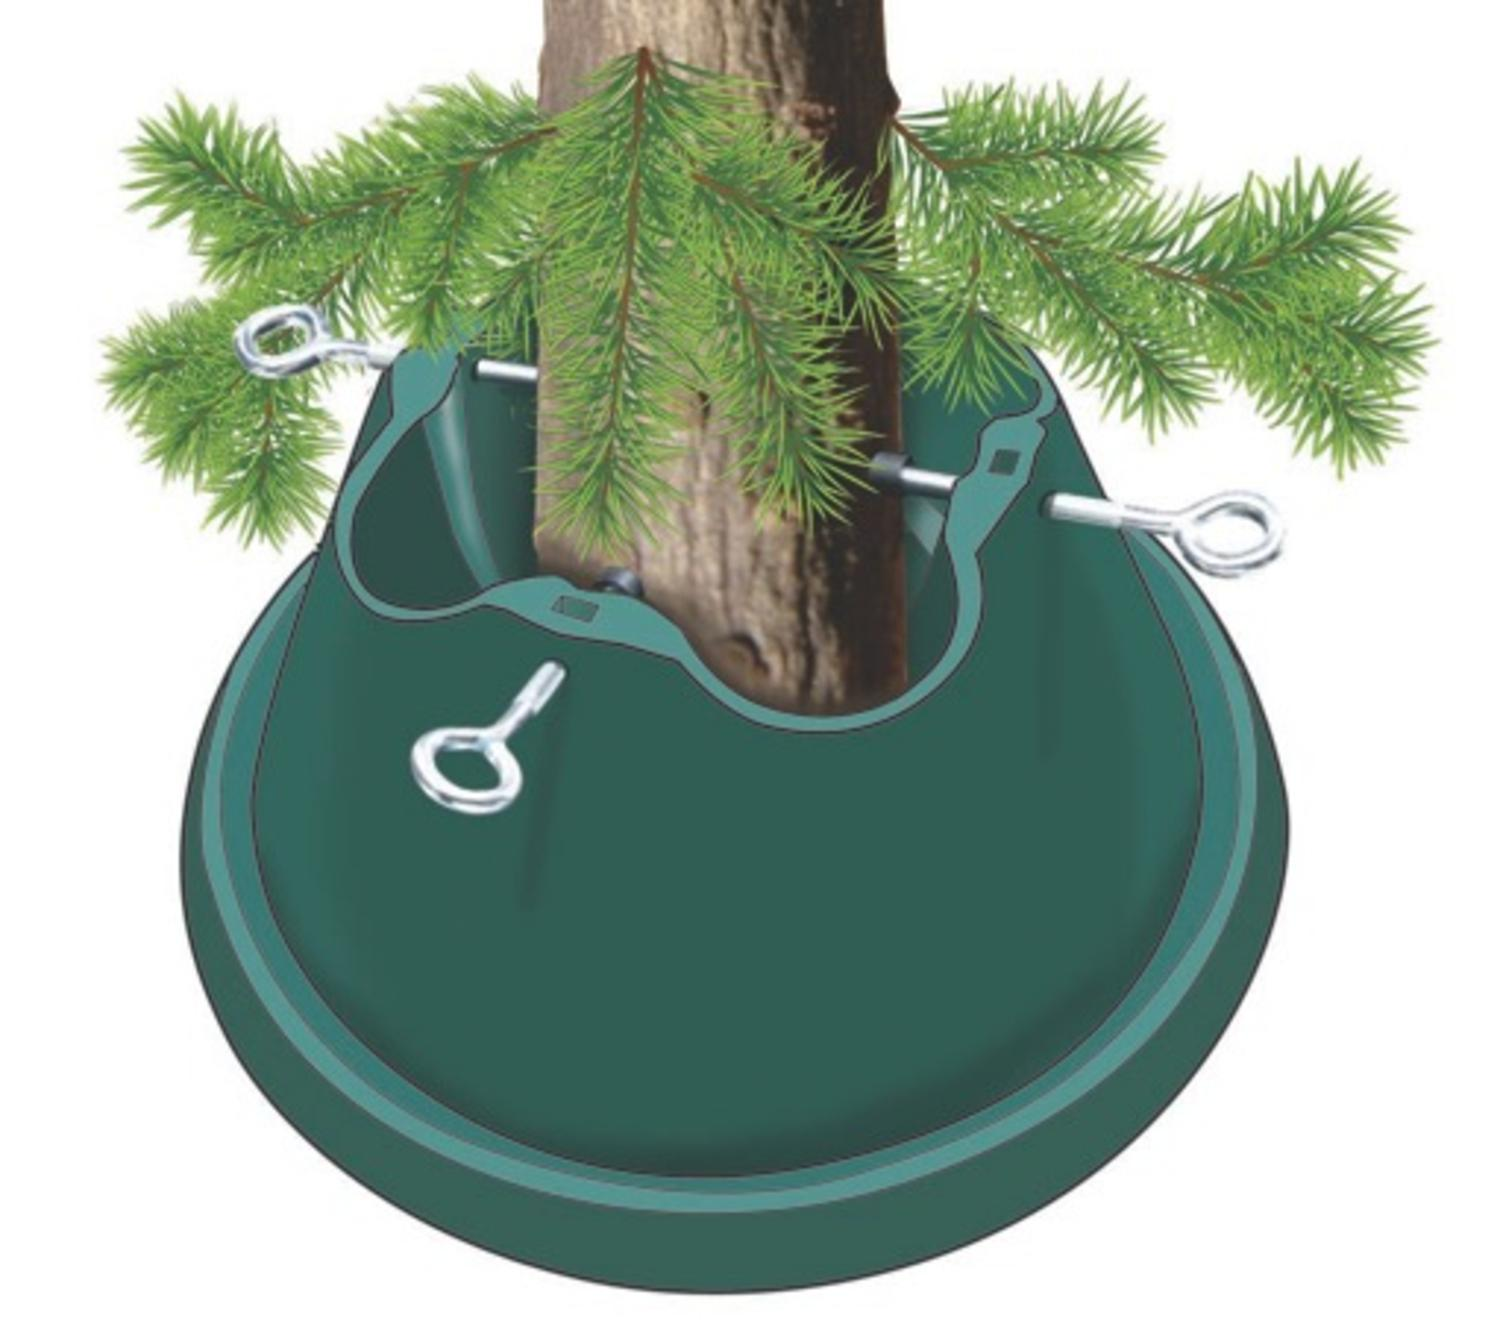 Heavy Duty Green Easy Watering Christmas Tree Stand   For Live Trees Up To  8u0027   Walmart.com